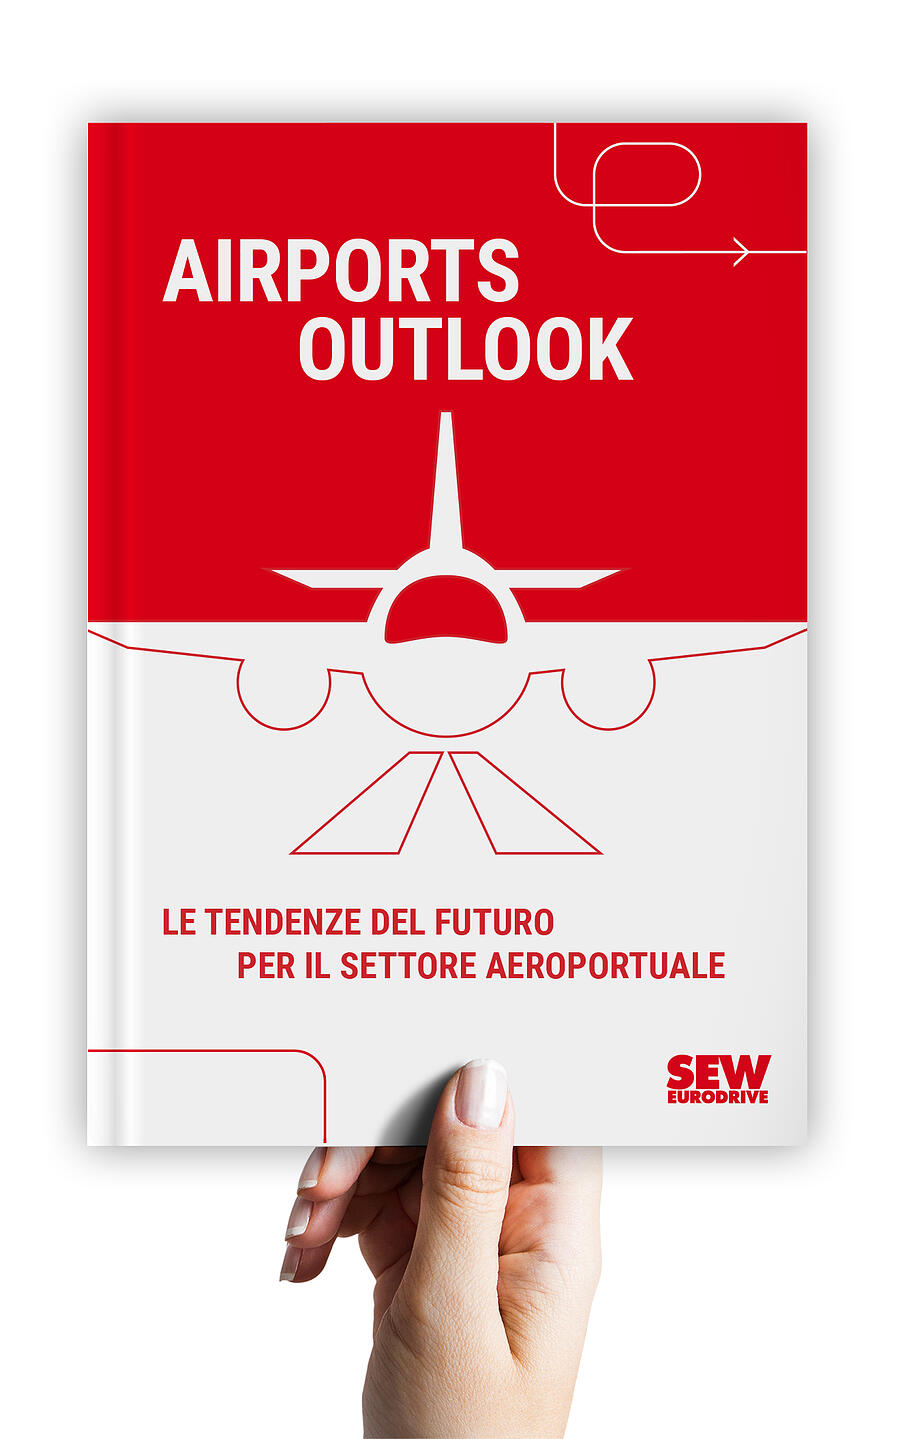 Airports outlook